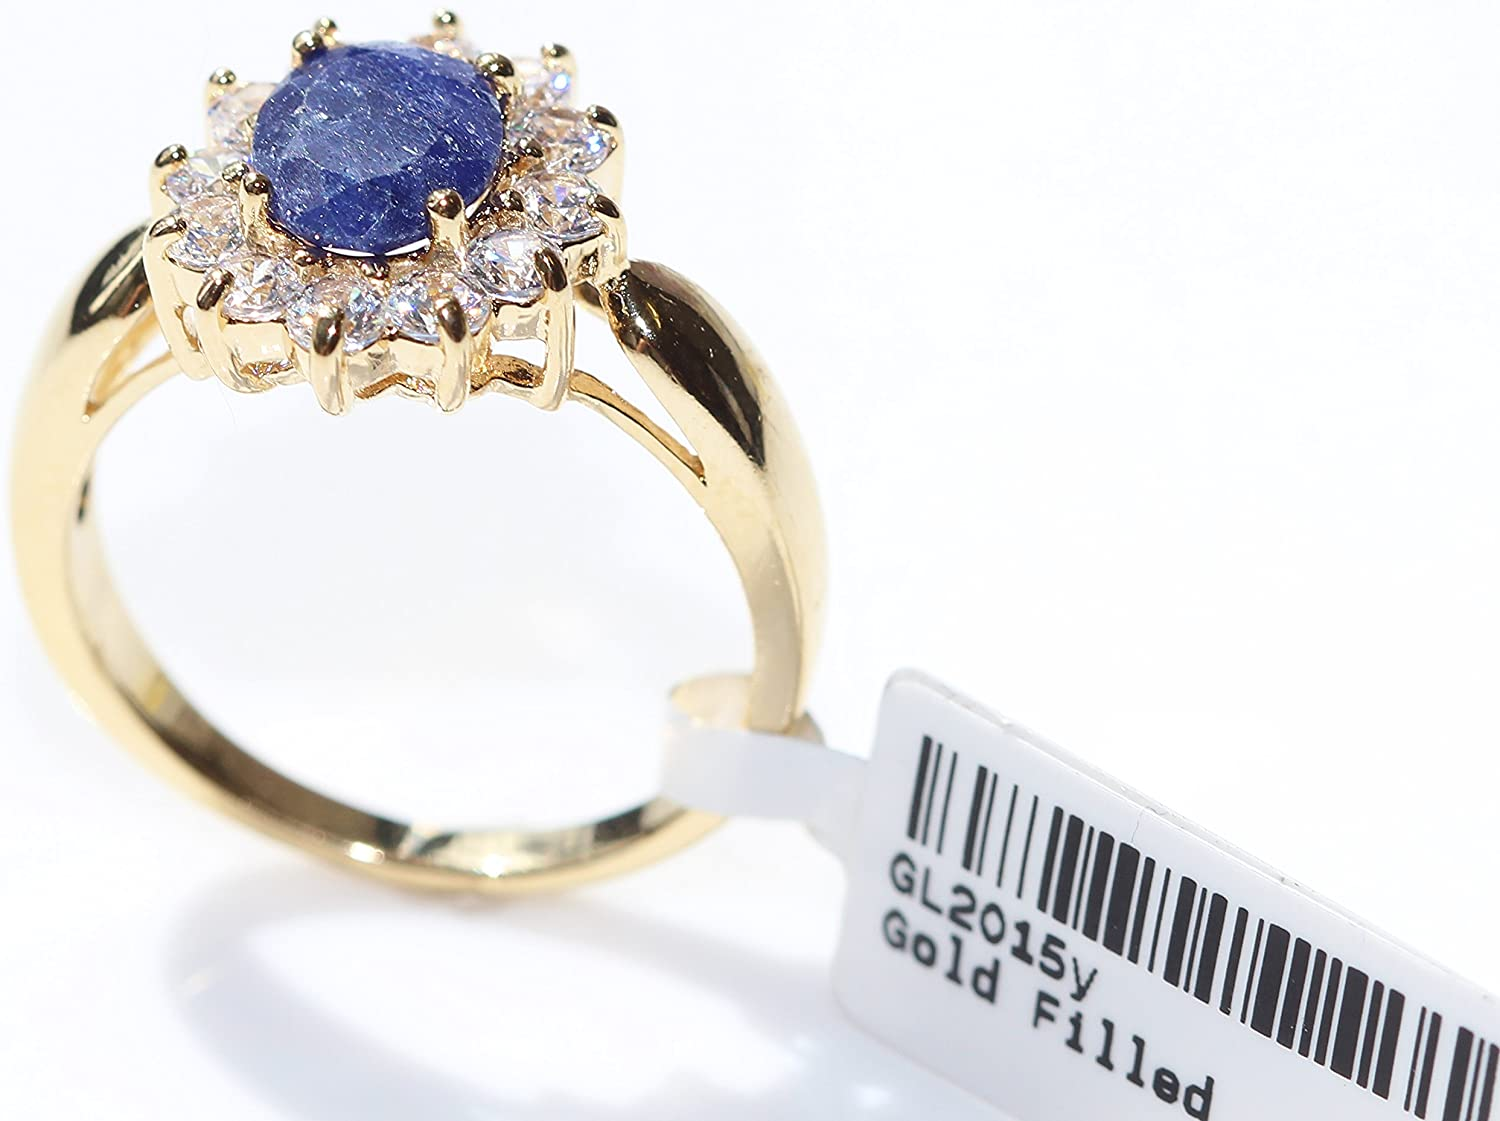 Jewellery/® Gold Filled Genuine Precious 1.45ct SAPPHIRE Gemstone Surrounded By Small Brilliant Clear Rounds Ring Solitaire Setting. Ah Stamped GL UK Guarantee 3/µ